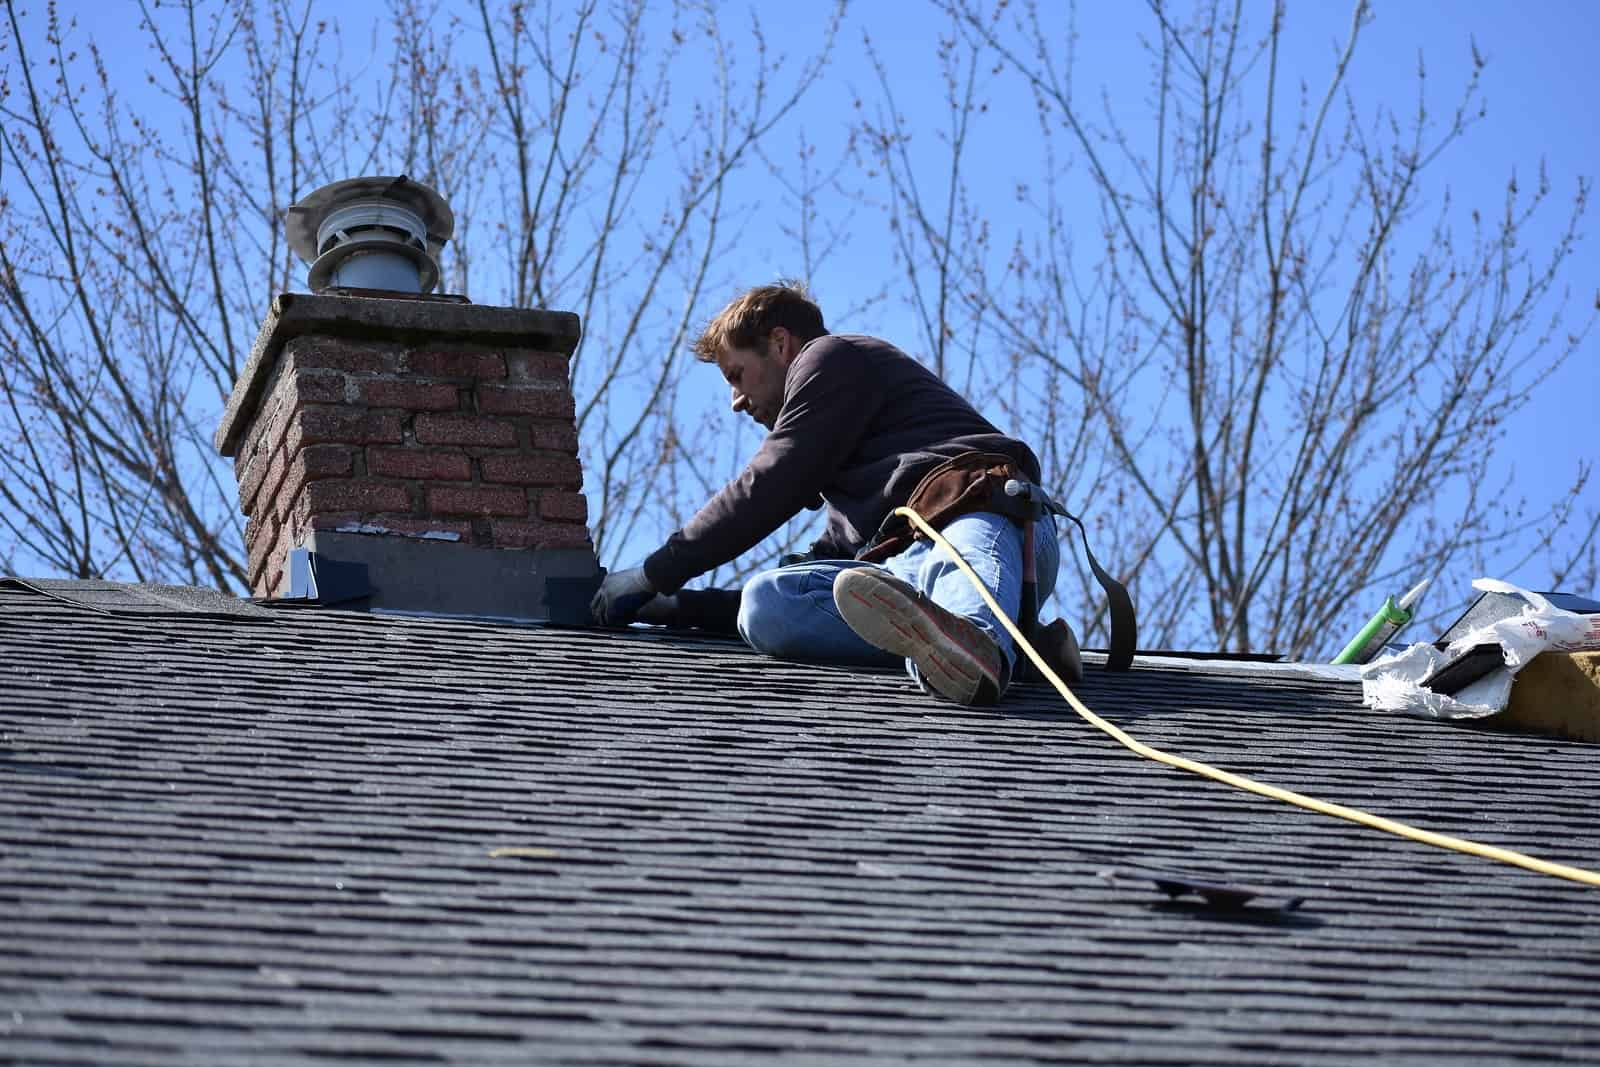 roofer Lynchburg {locations(state_name)}